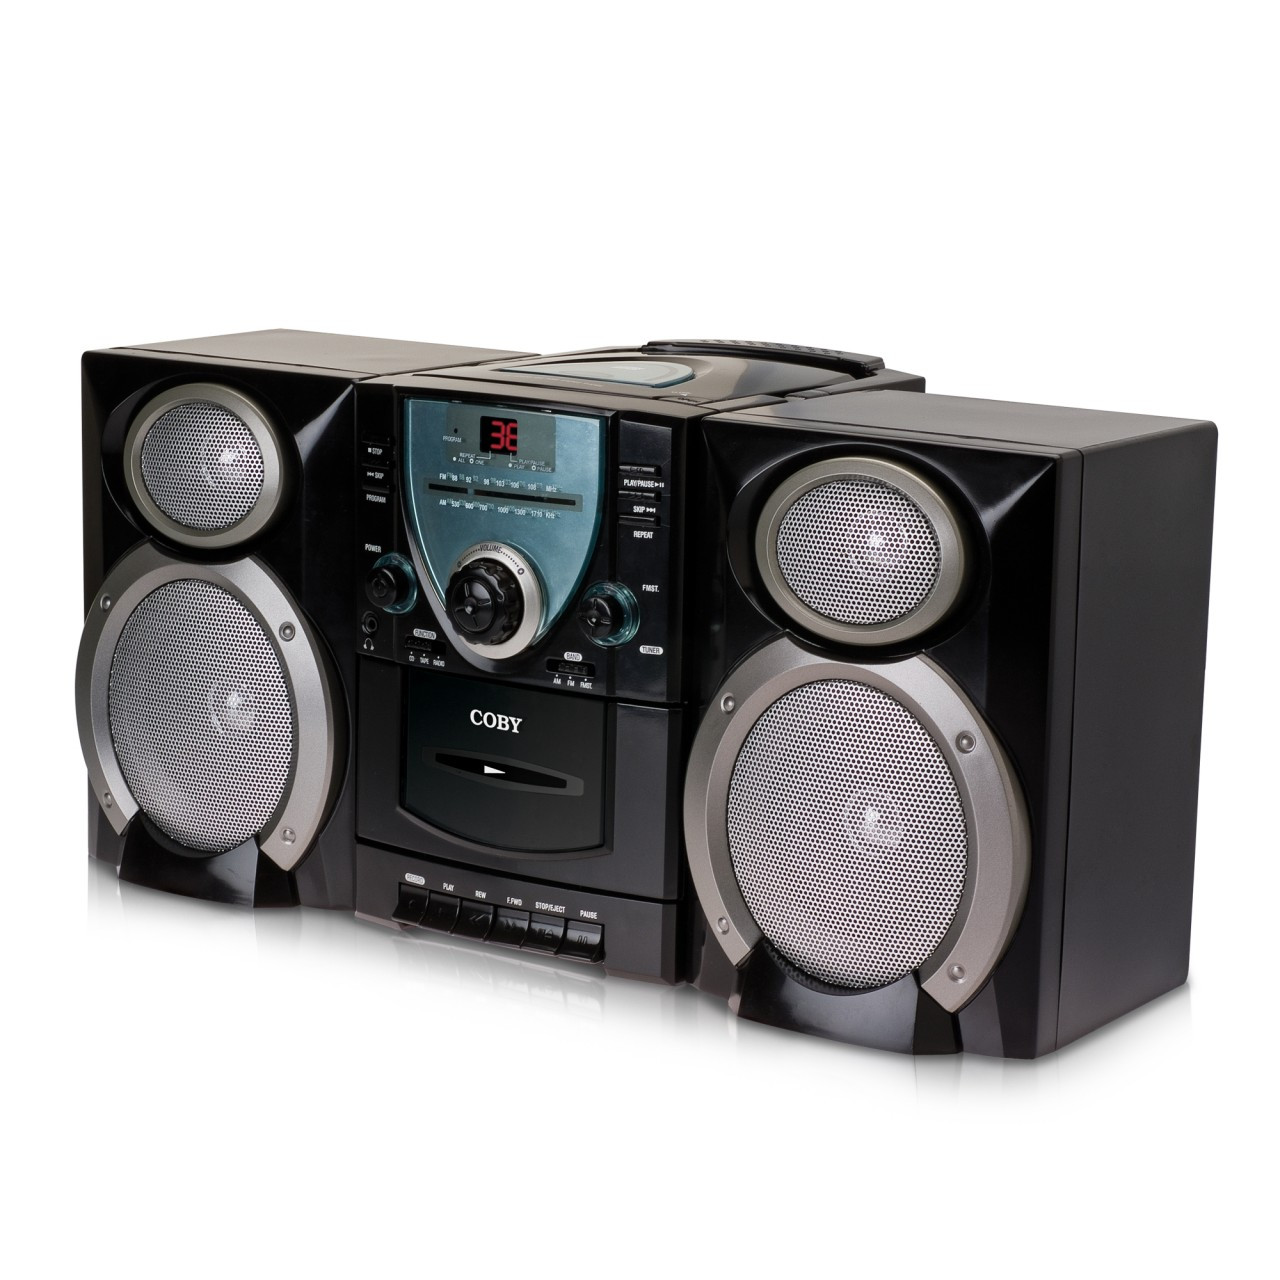 Coby Mini Portable CD Stereo System CXCD400